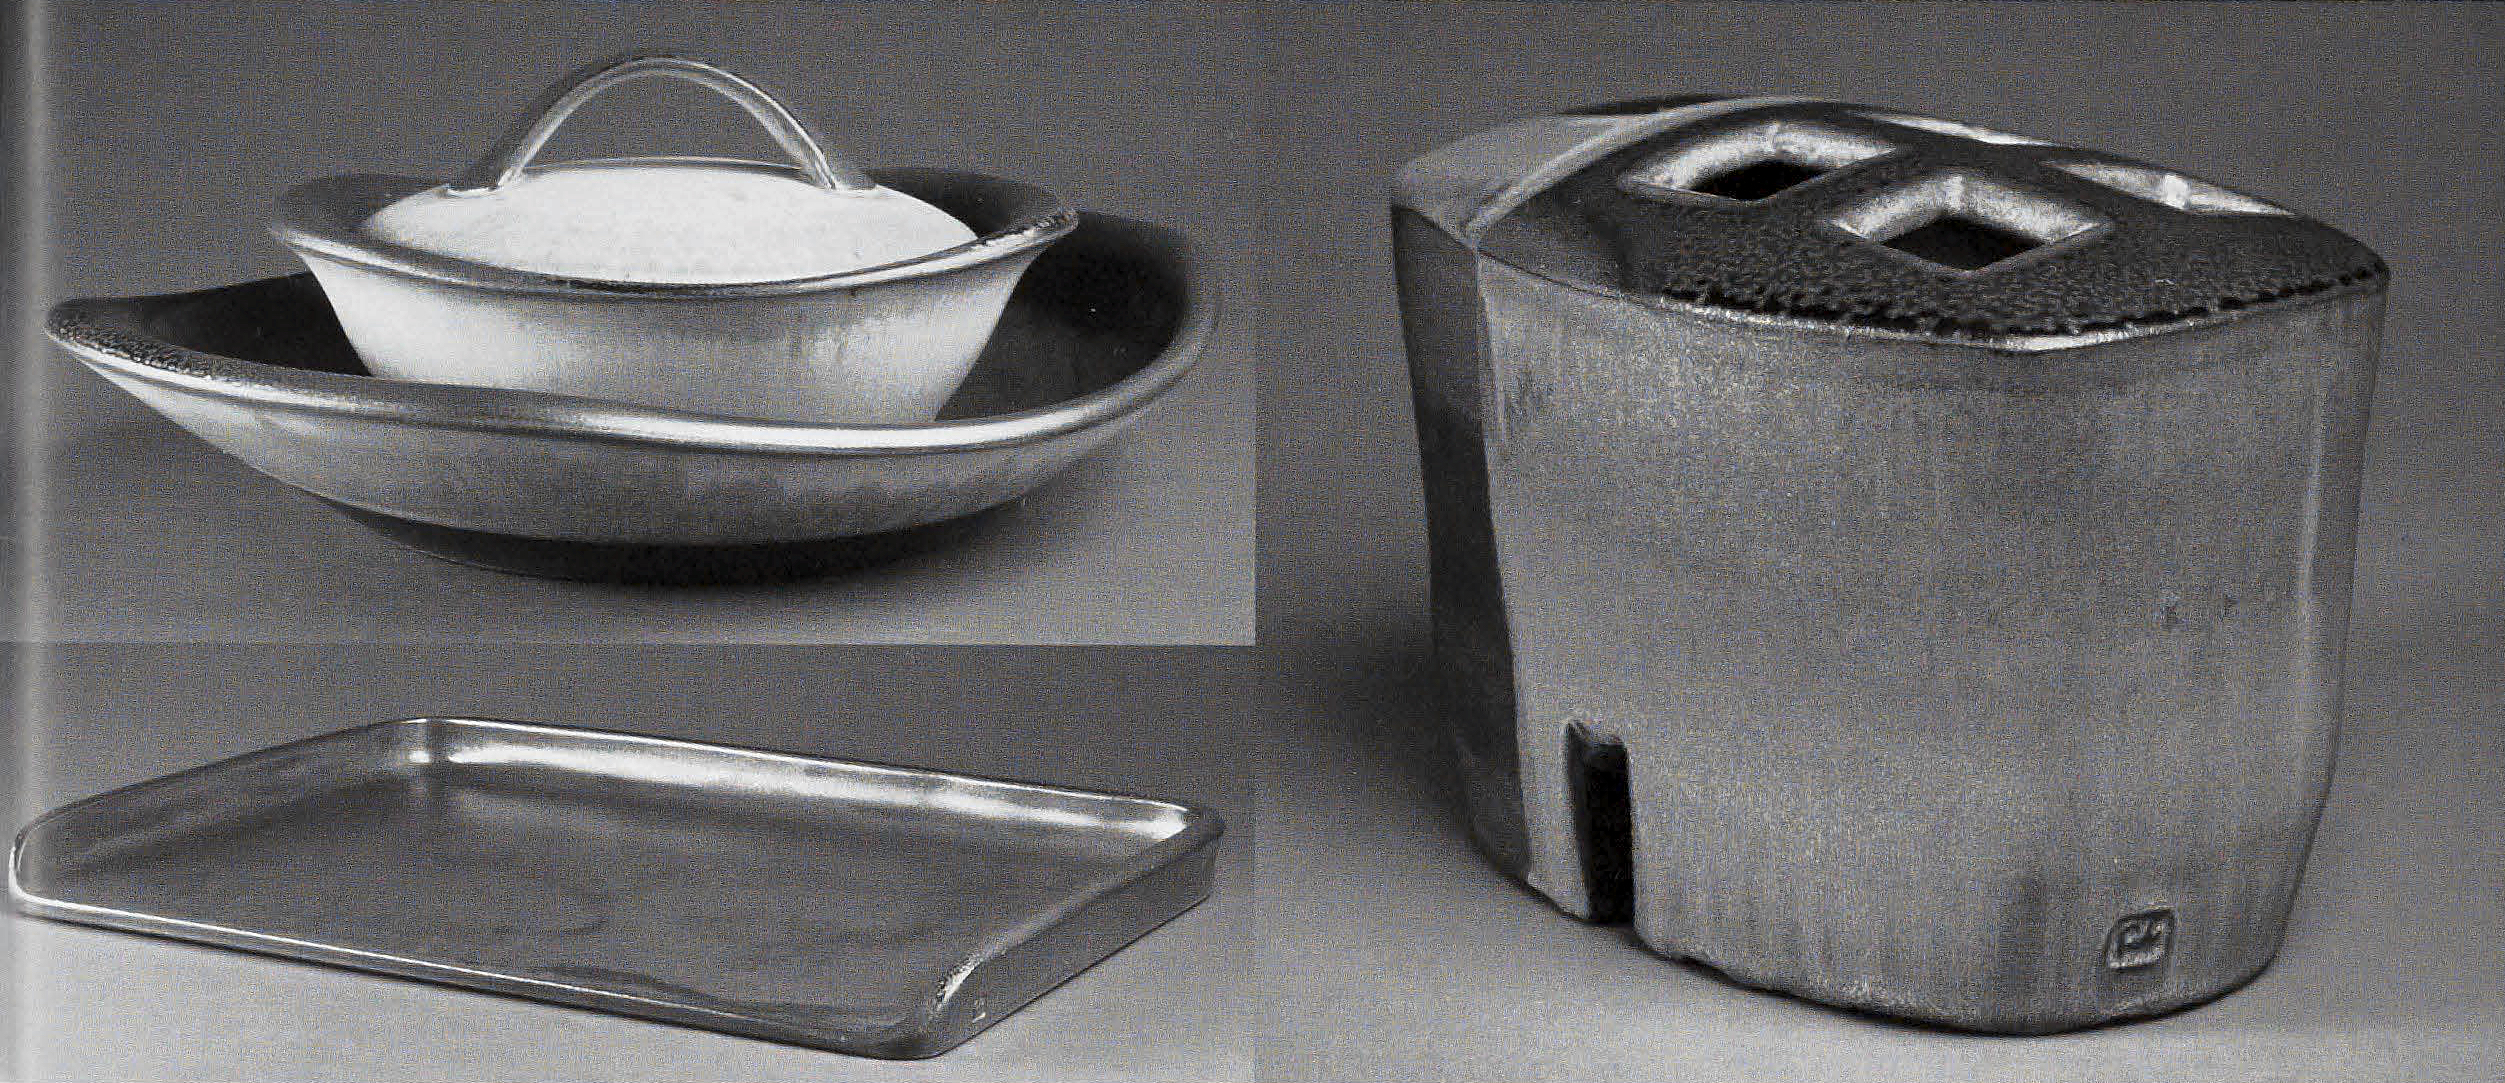 Woodstove Humidifier, Ovenware Set, Oven/pizza stone, 2007. Photographs by Michael Stadler